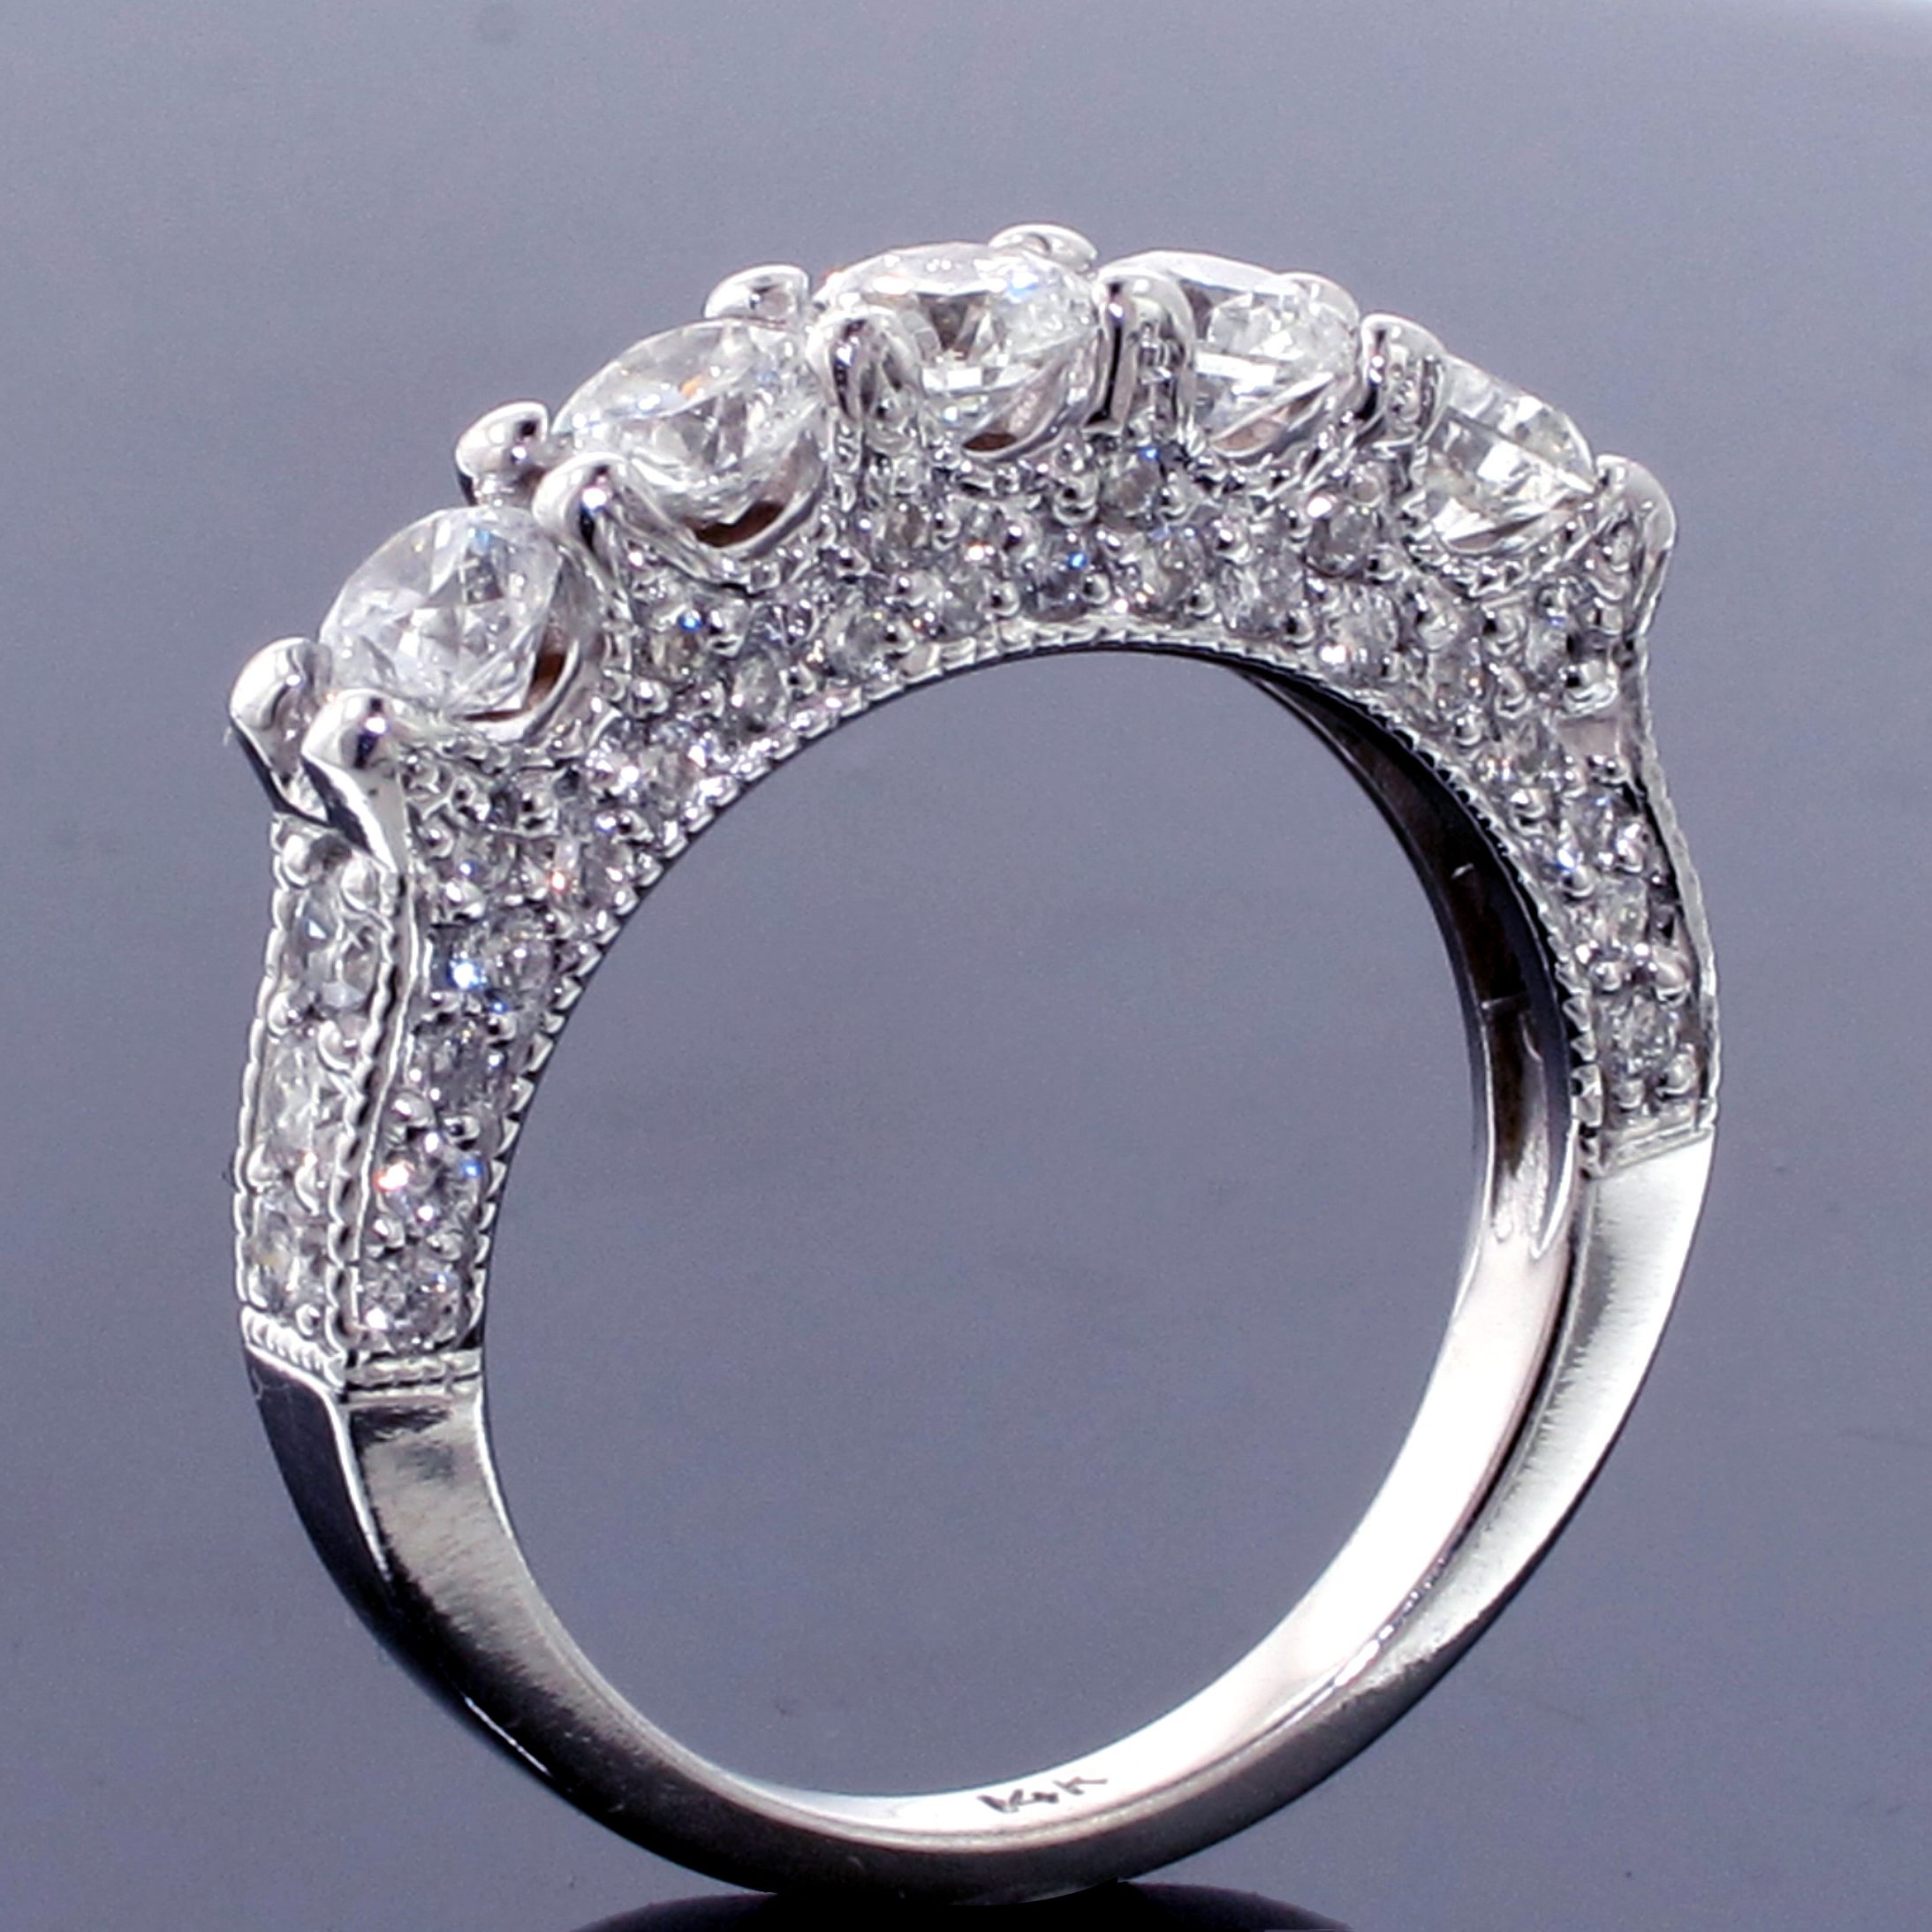 This Five Stone Diamond Encrusted Wedding Band Would Be A